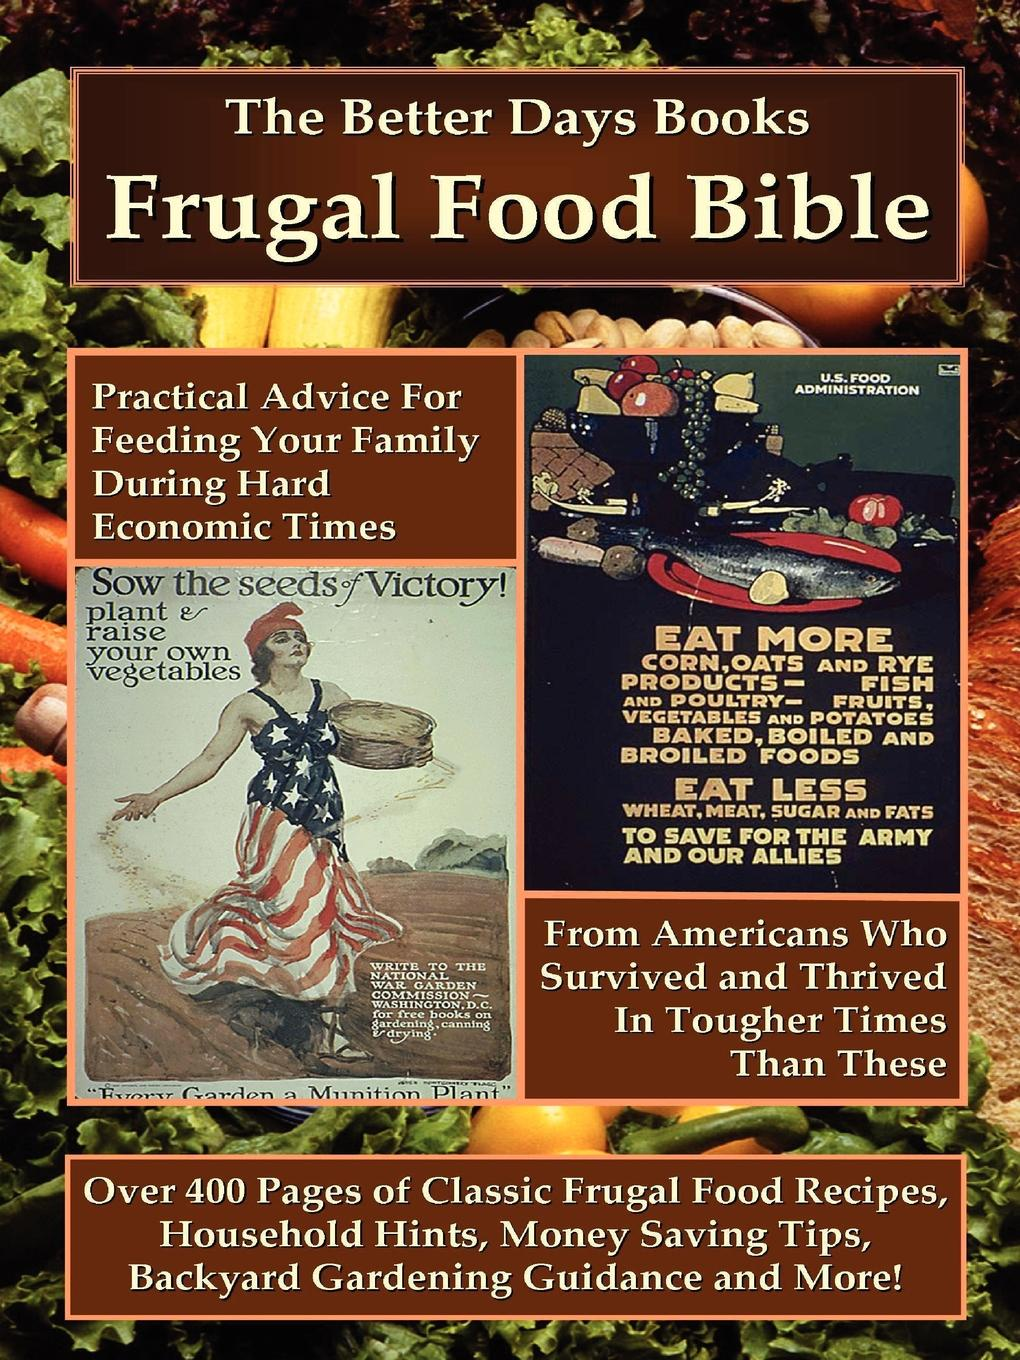 Days Books Better Days Books, Better Days Books The Better Days Books Frugal Food Bible. Practical Advice for Feeding Your Family During Hard Economic Times from Americans Who Survived and Thrived I